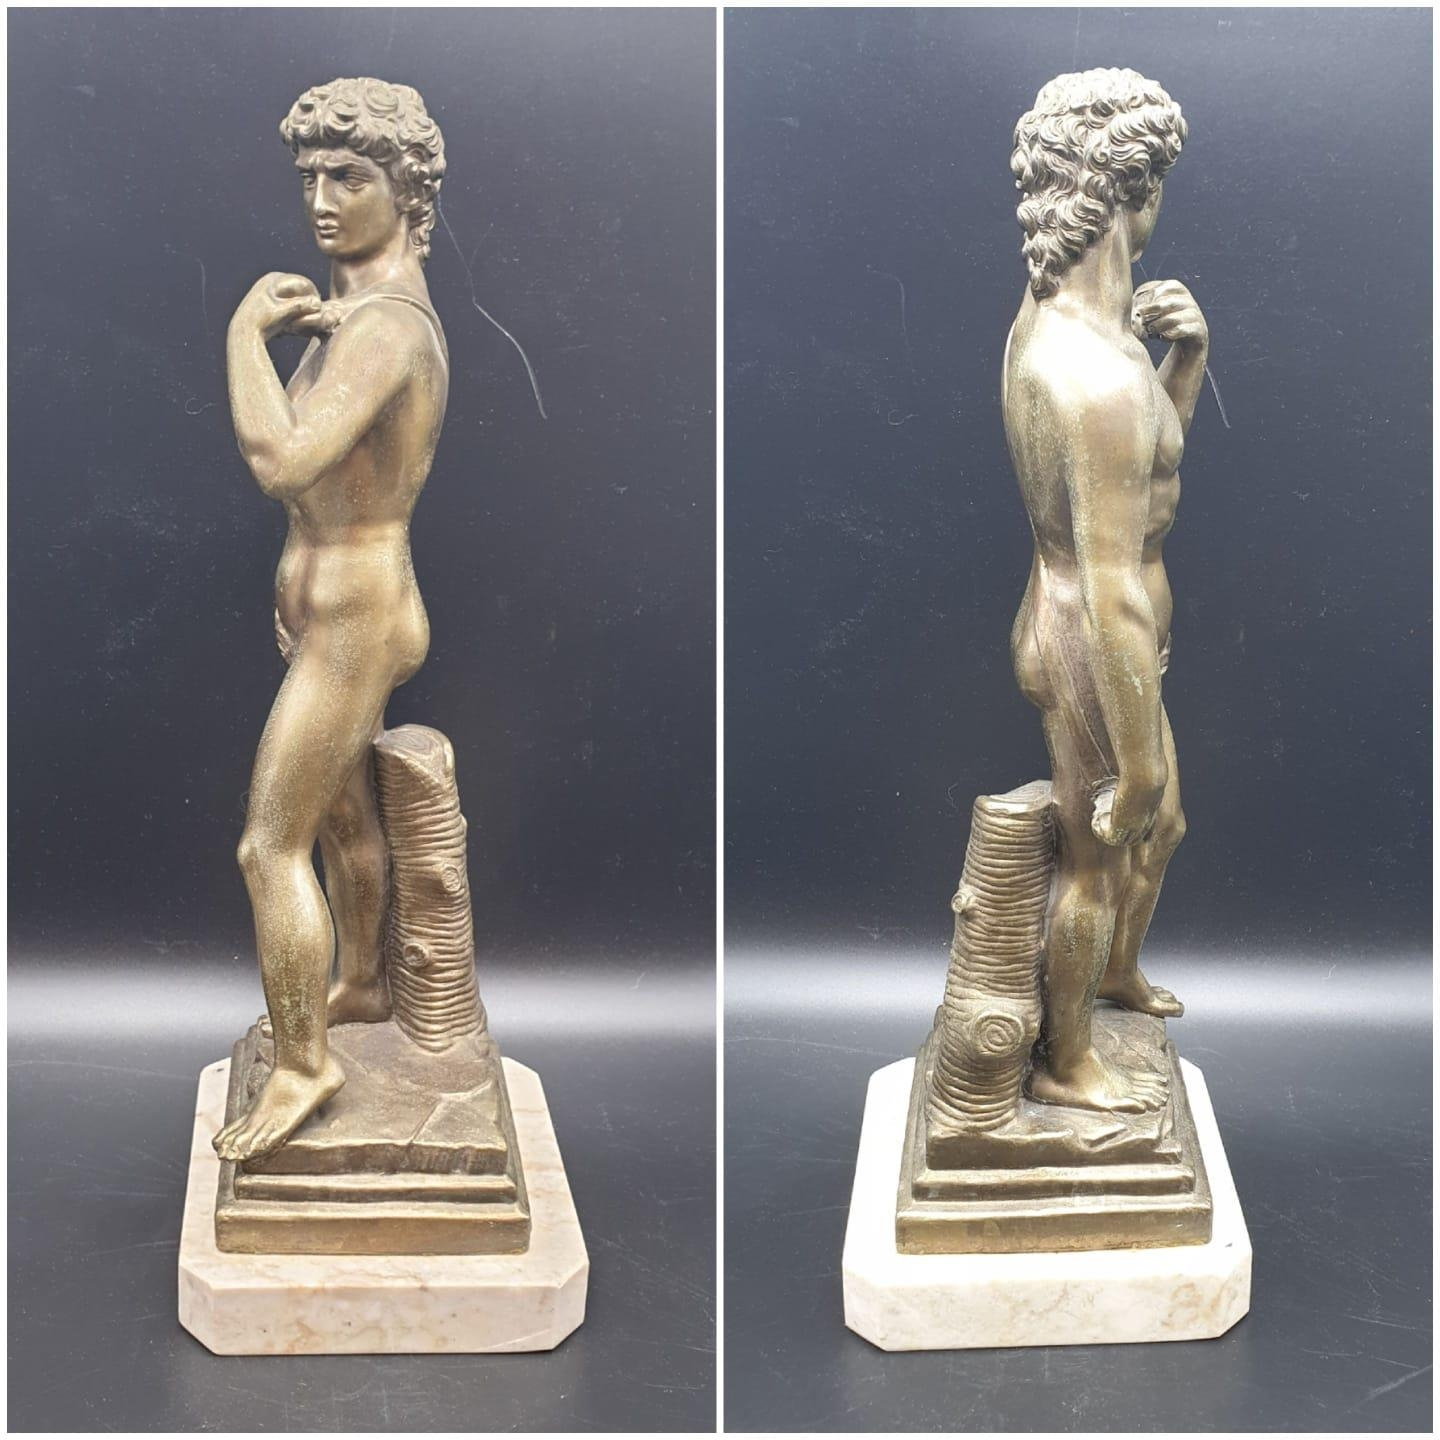 A Statue of Michelangelo's David in Brass on a Marble Base 40cms Tall 3.6kg - Image 2 of 9